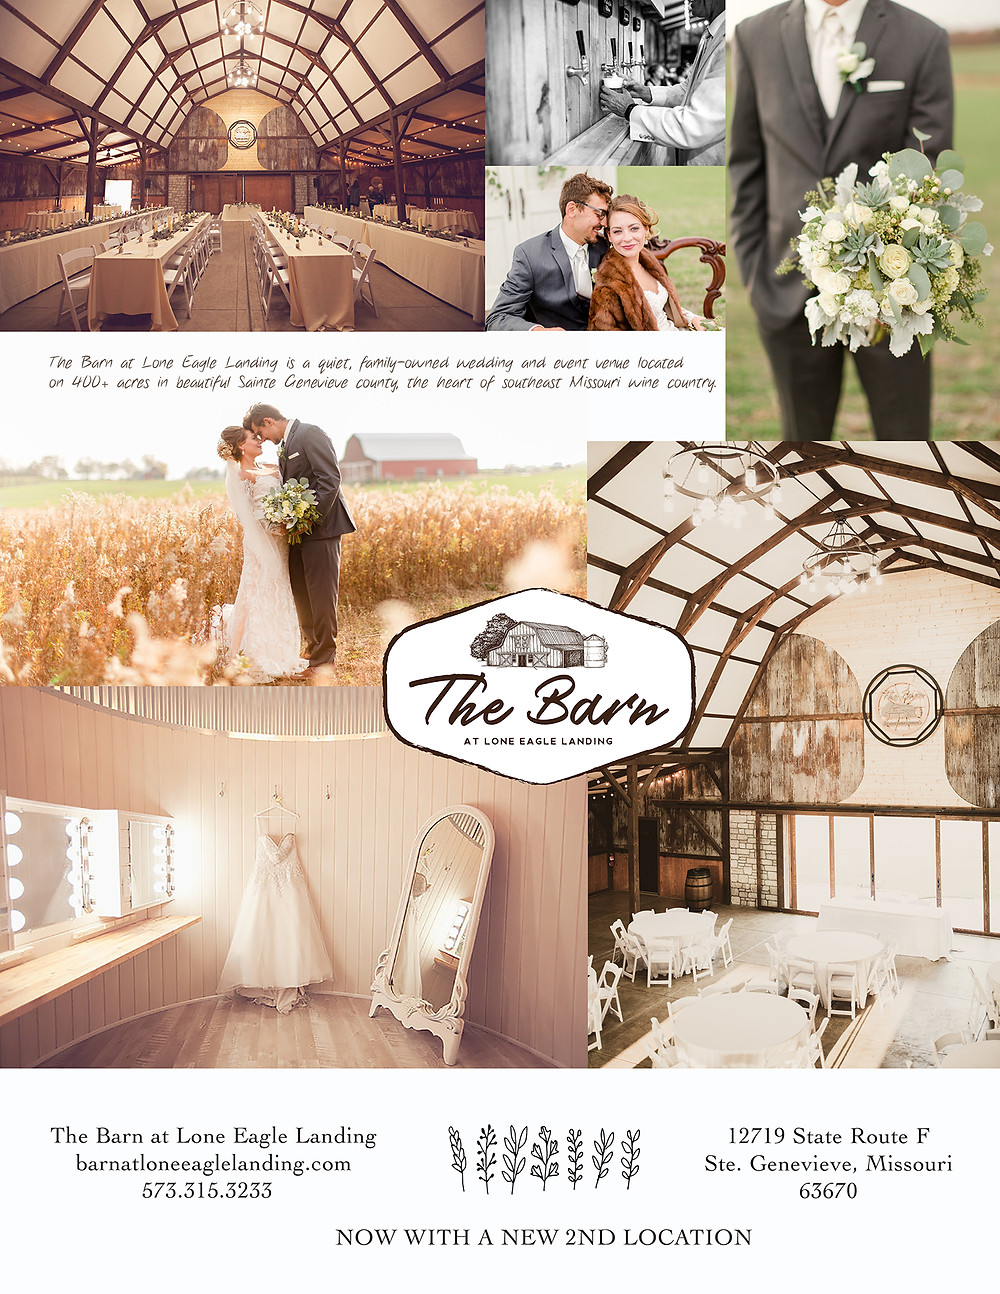 paid ad from The Barn at Lone Eagle Landing wedding venue with bride and groom dancing photo ops and banquet hall